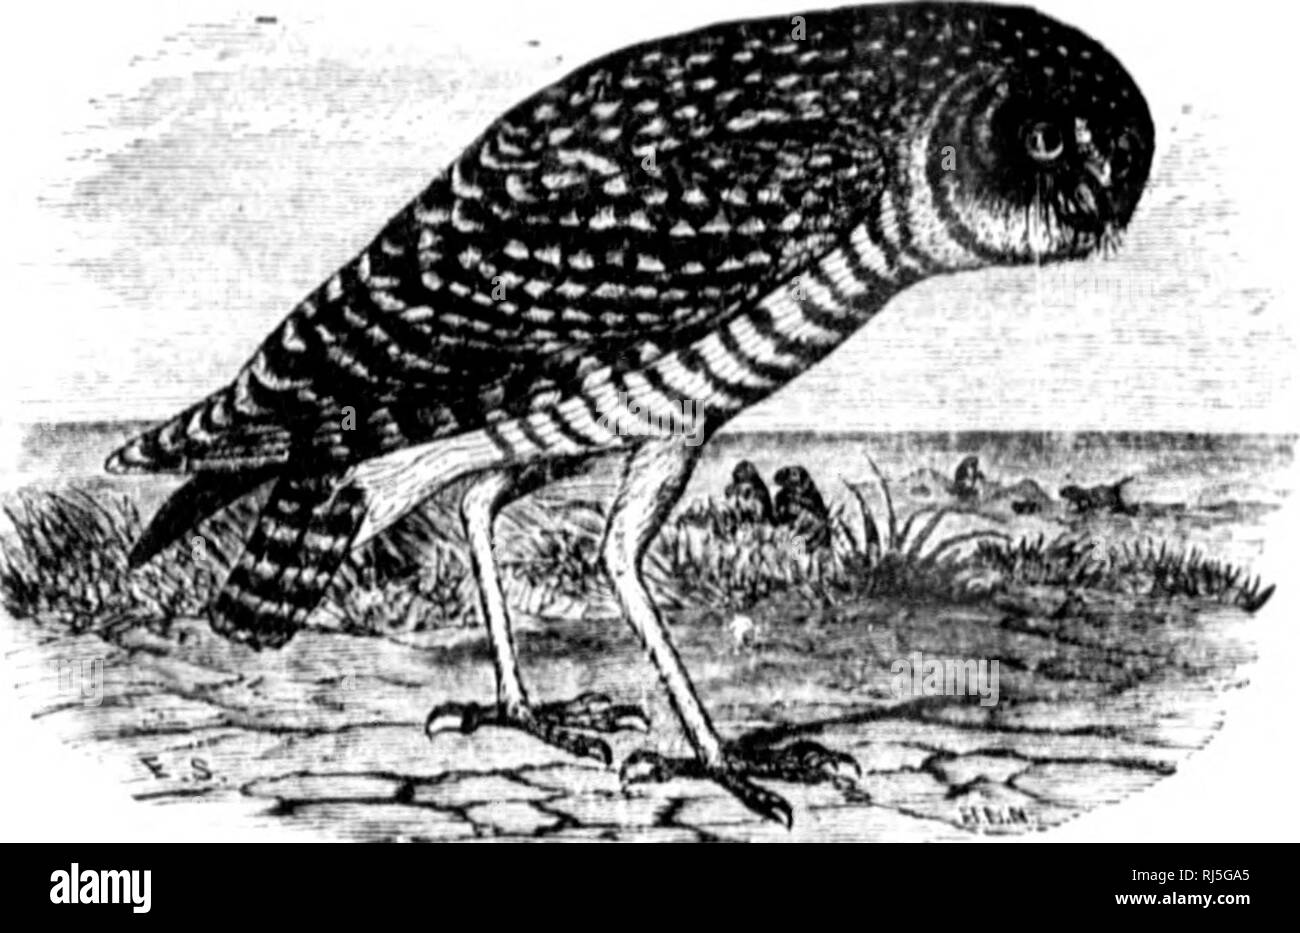 """. The birds of eastern North America known to occur east of the ninetieth meridian [microform]. Birds; Birds; Oiseaux; Oiseaux. vw^J^""""^' IImwU Owl.. â *'â '. Please note that these images are extracted from scanned page images that may have been digitally enhanced for readability - coloration and appearance of these illustrations may not perfectly resemble the original work.. Cory, Charles B. (Charles Barney), 1857-1921. Chicago : Field Columbian Museum - Stock Image"""